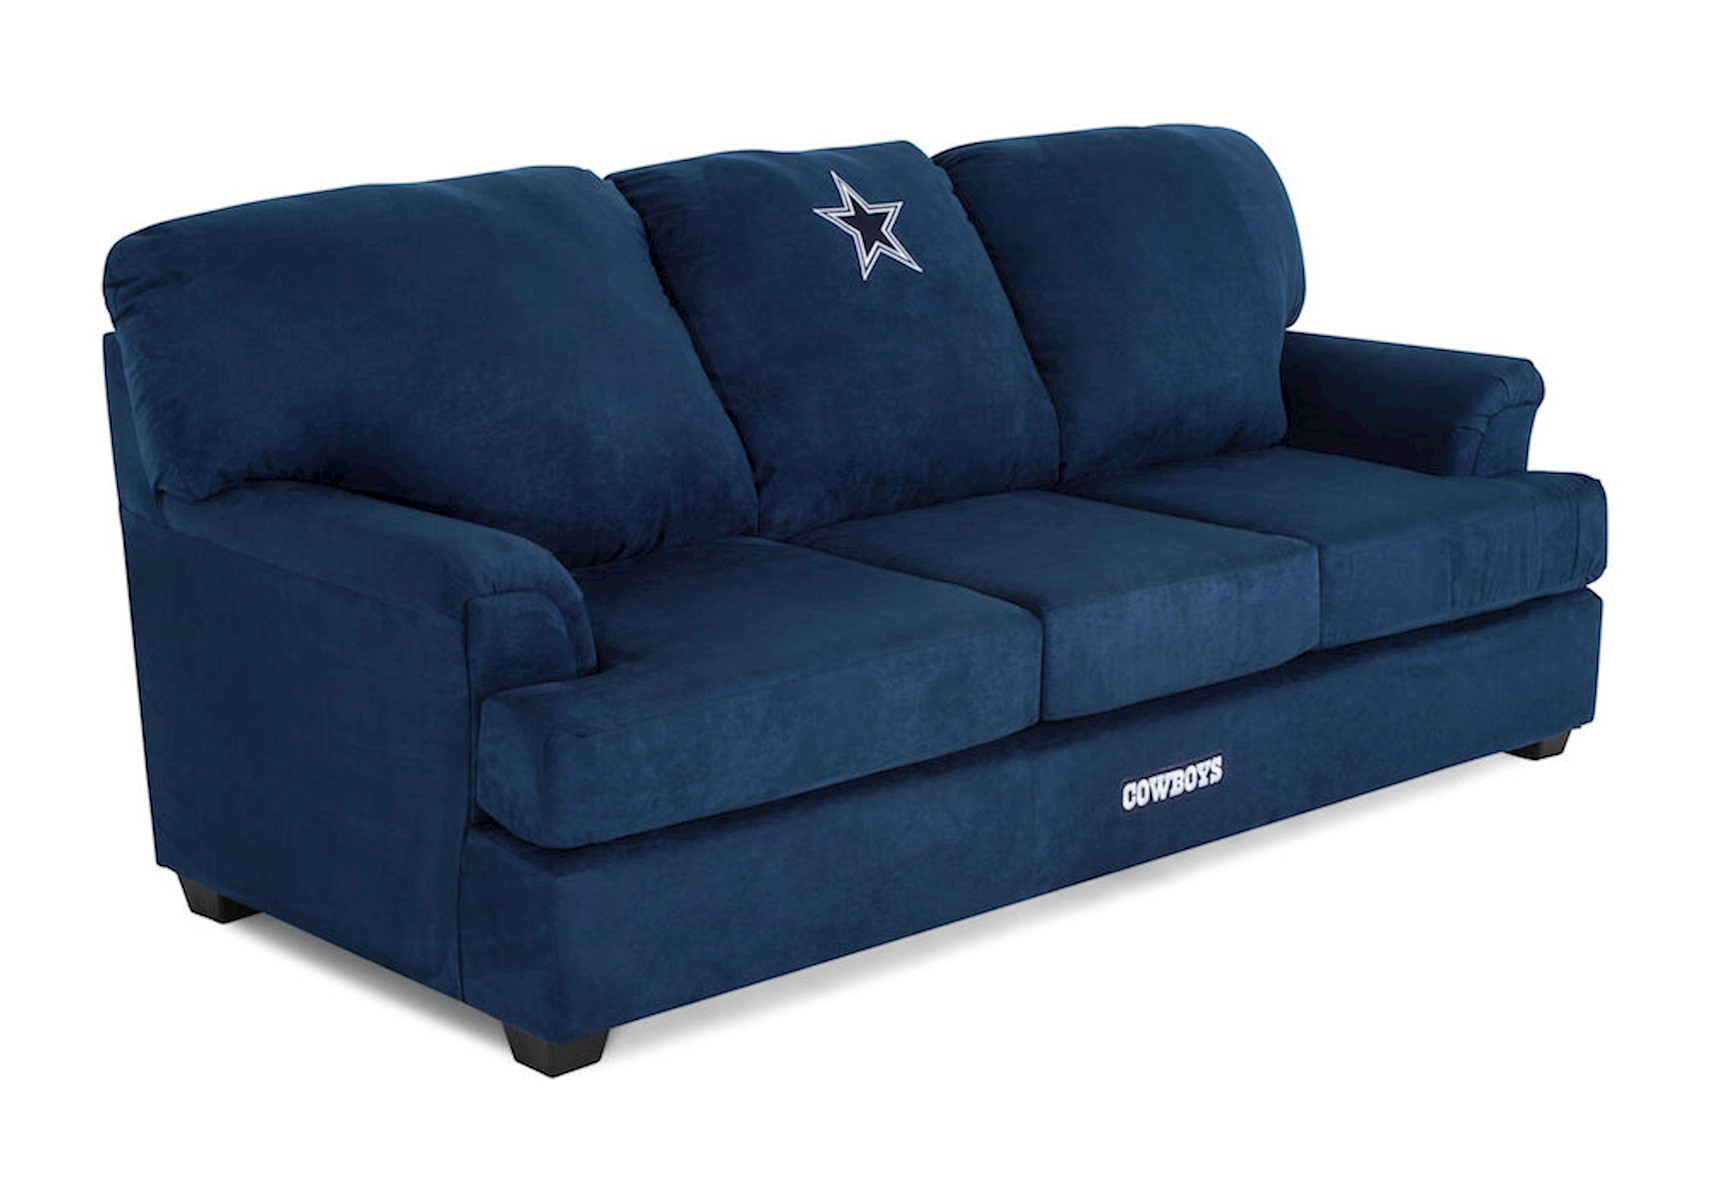 Dallas Cowboy Sofa